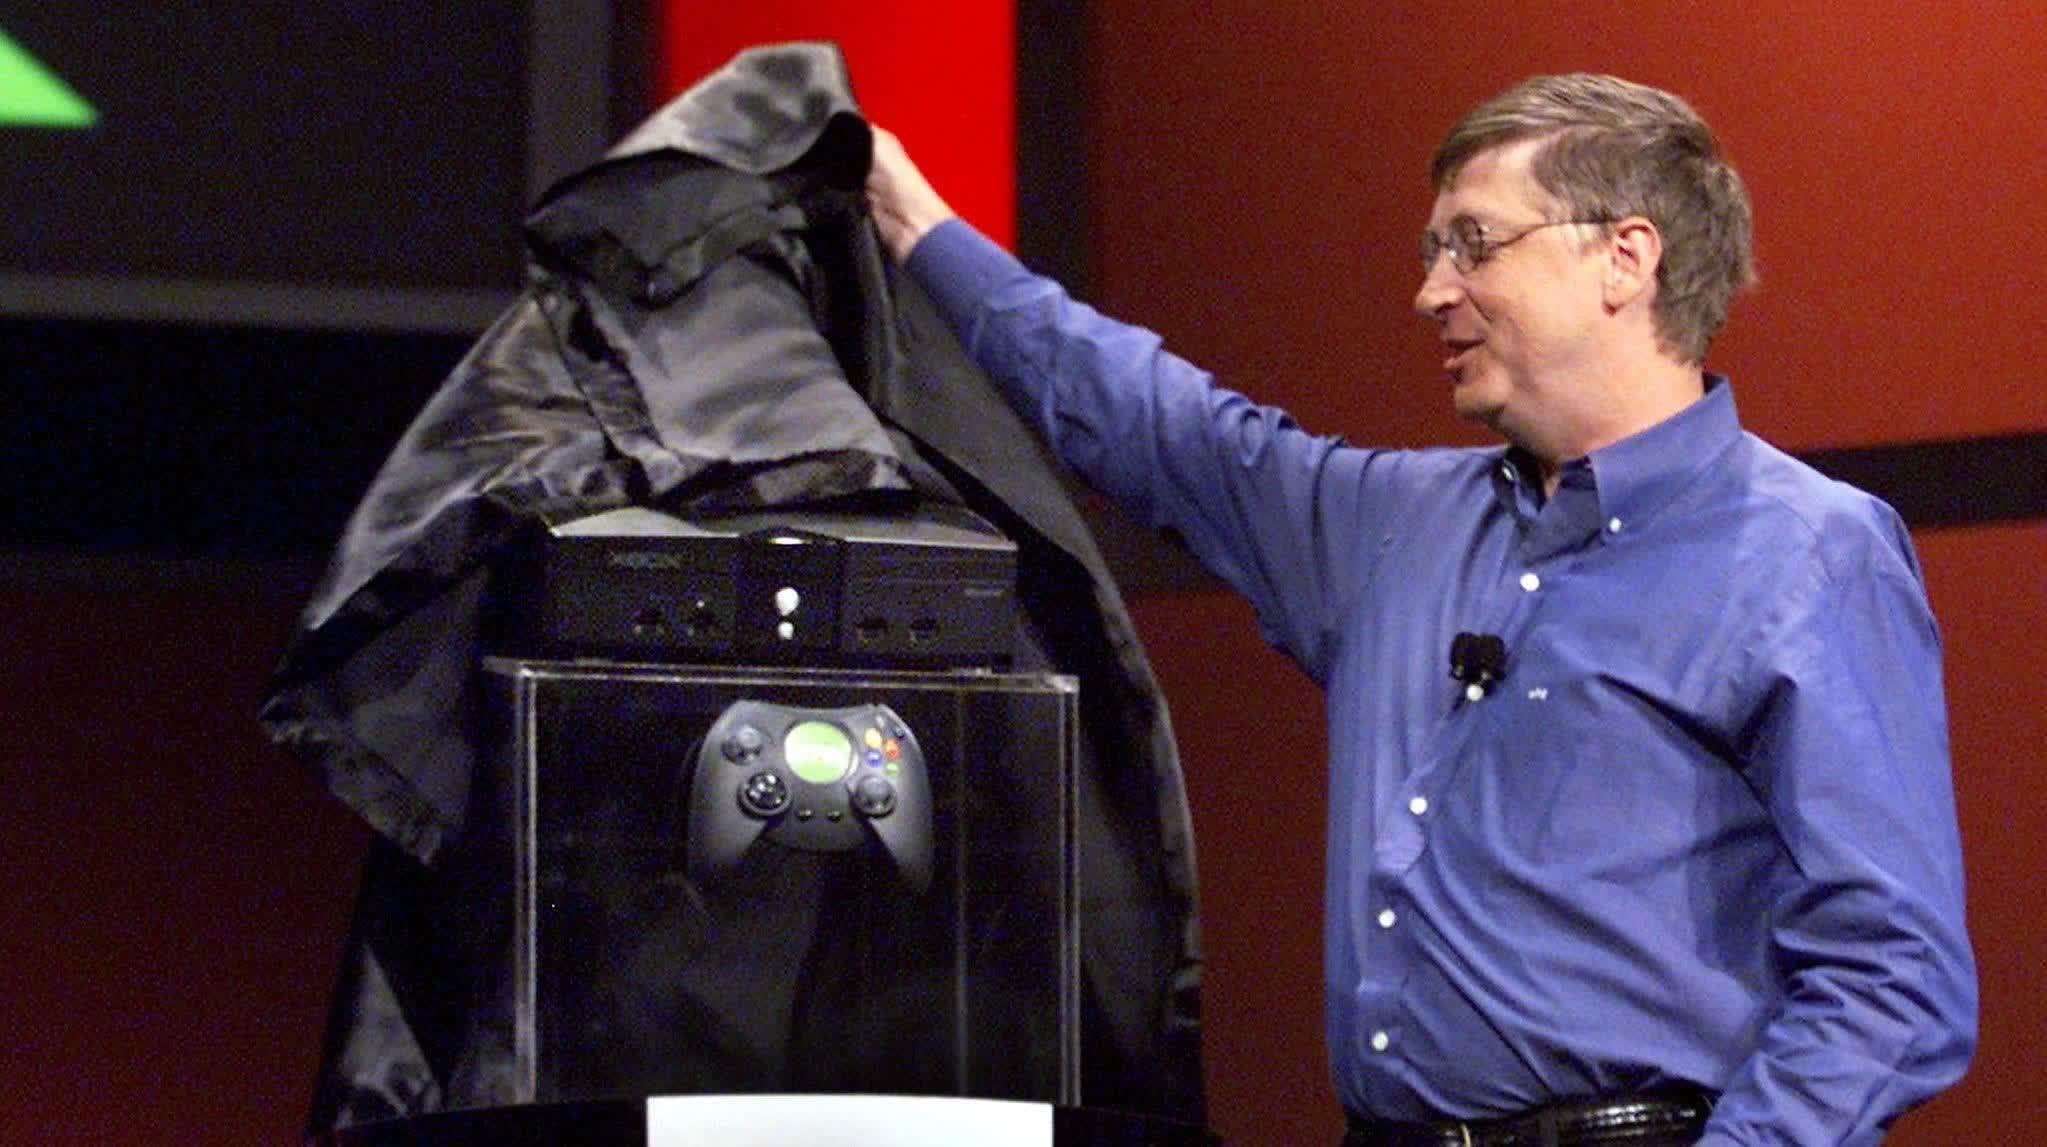 Xbox creator apologizes to AMD over last-minute switch to Intel CPUs 20 years ago